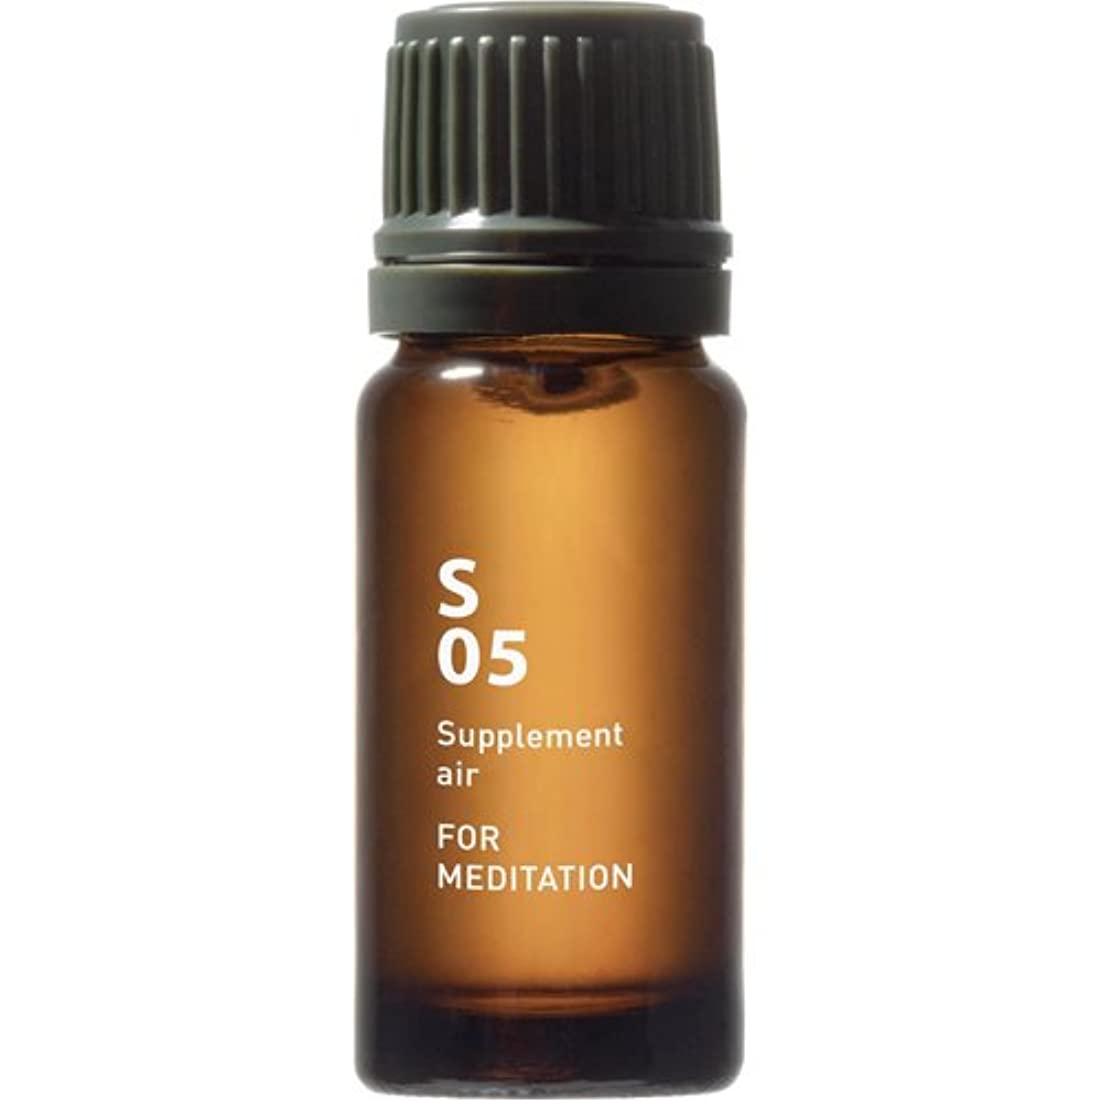 追跡サラダ書士S05 FOR MEDITATION Supplement air 10ml